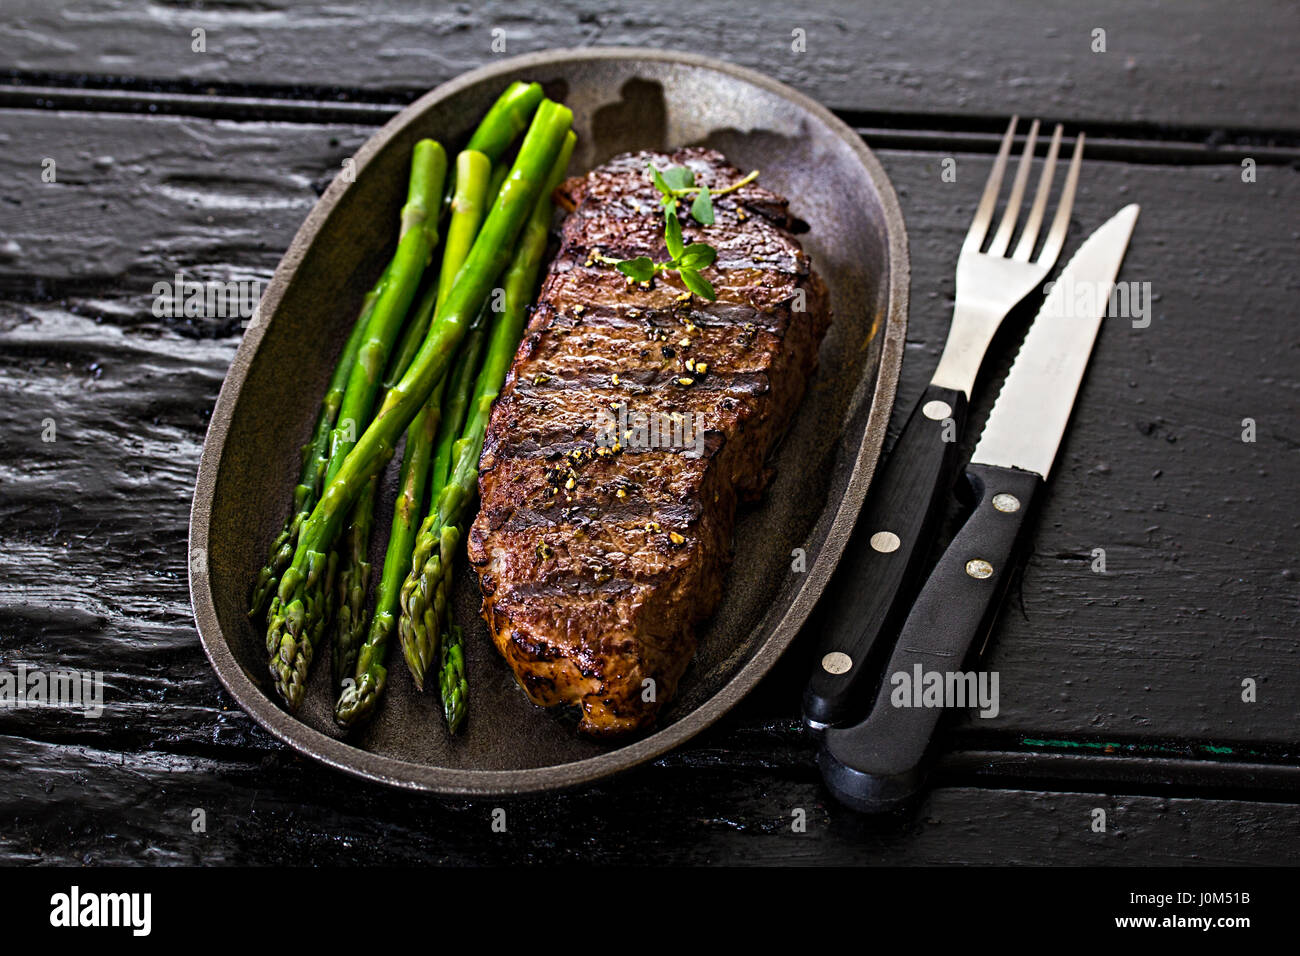 Steak with green asparagus - Stock Image